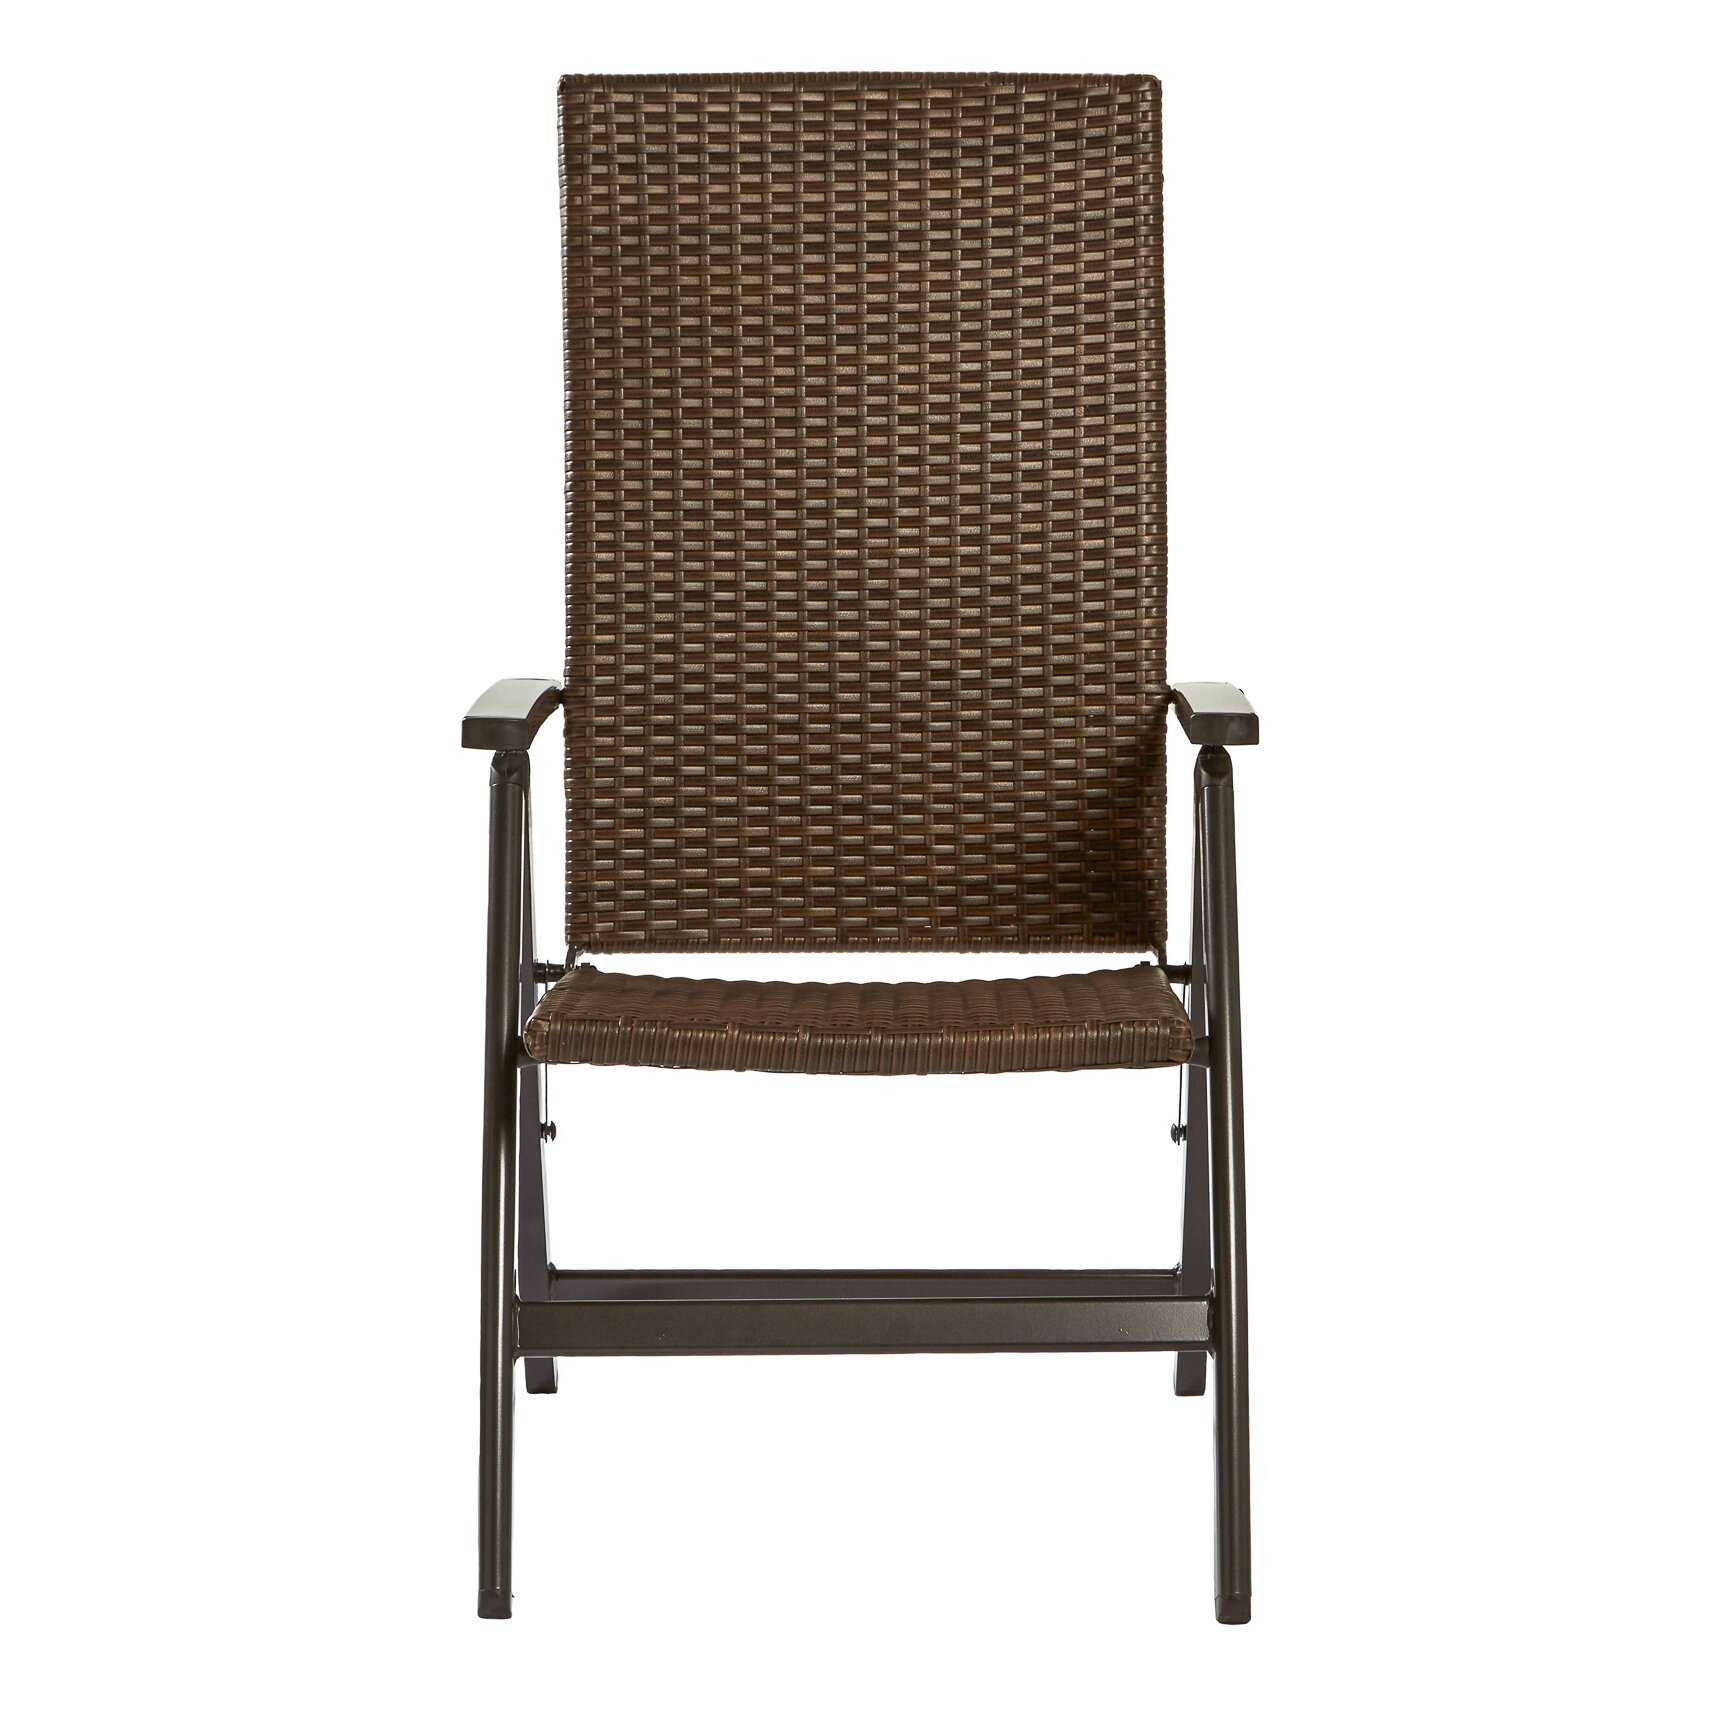 Greendale Home Fashions Wicker Outdoor Reclining Chair